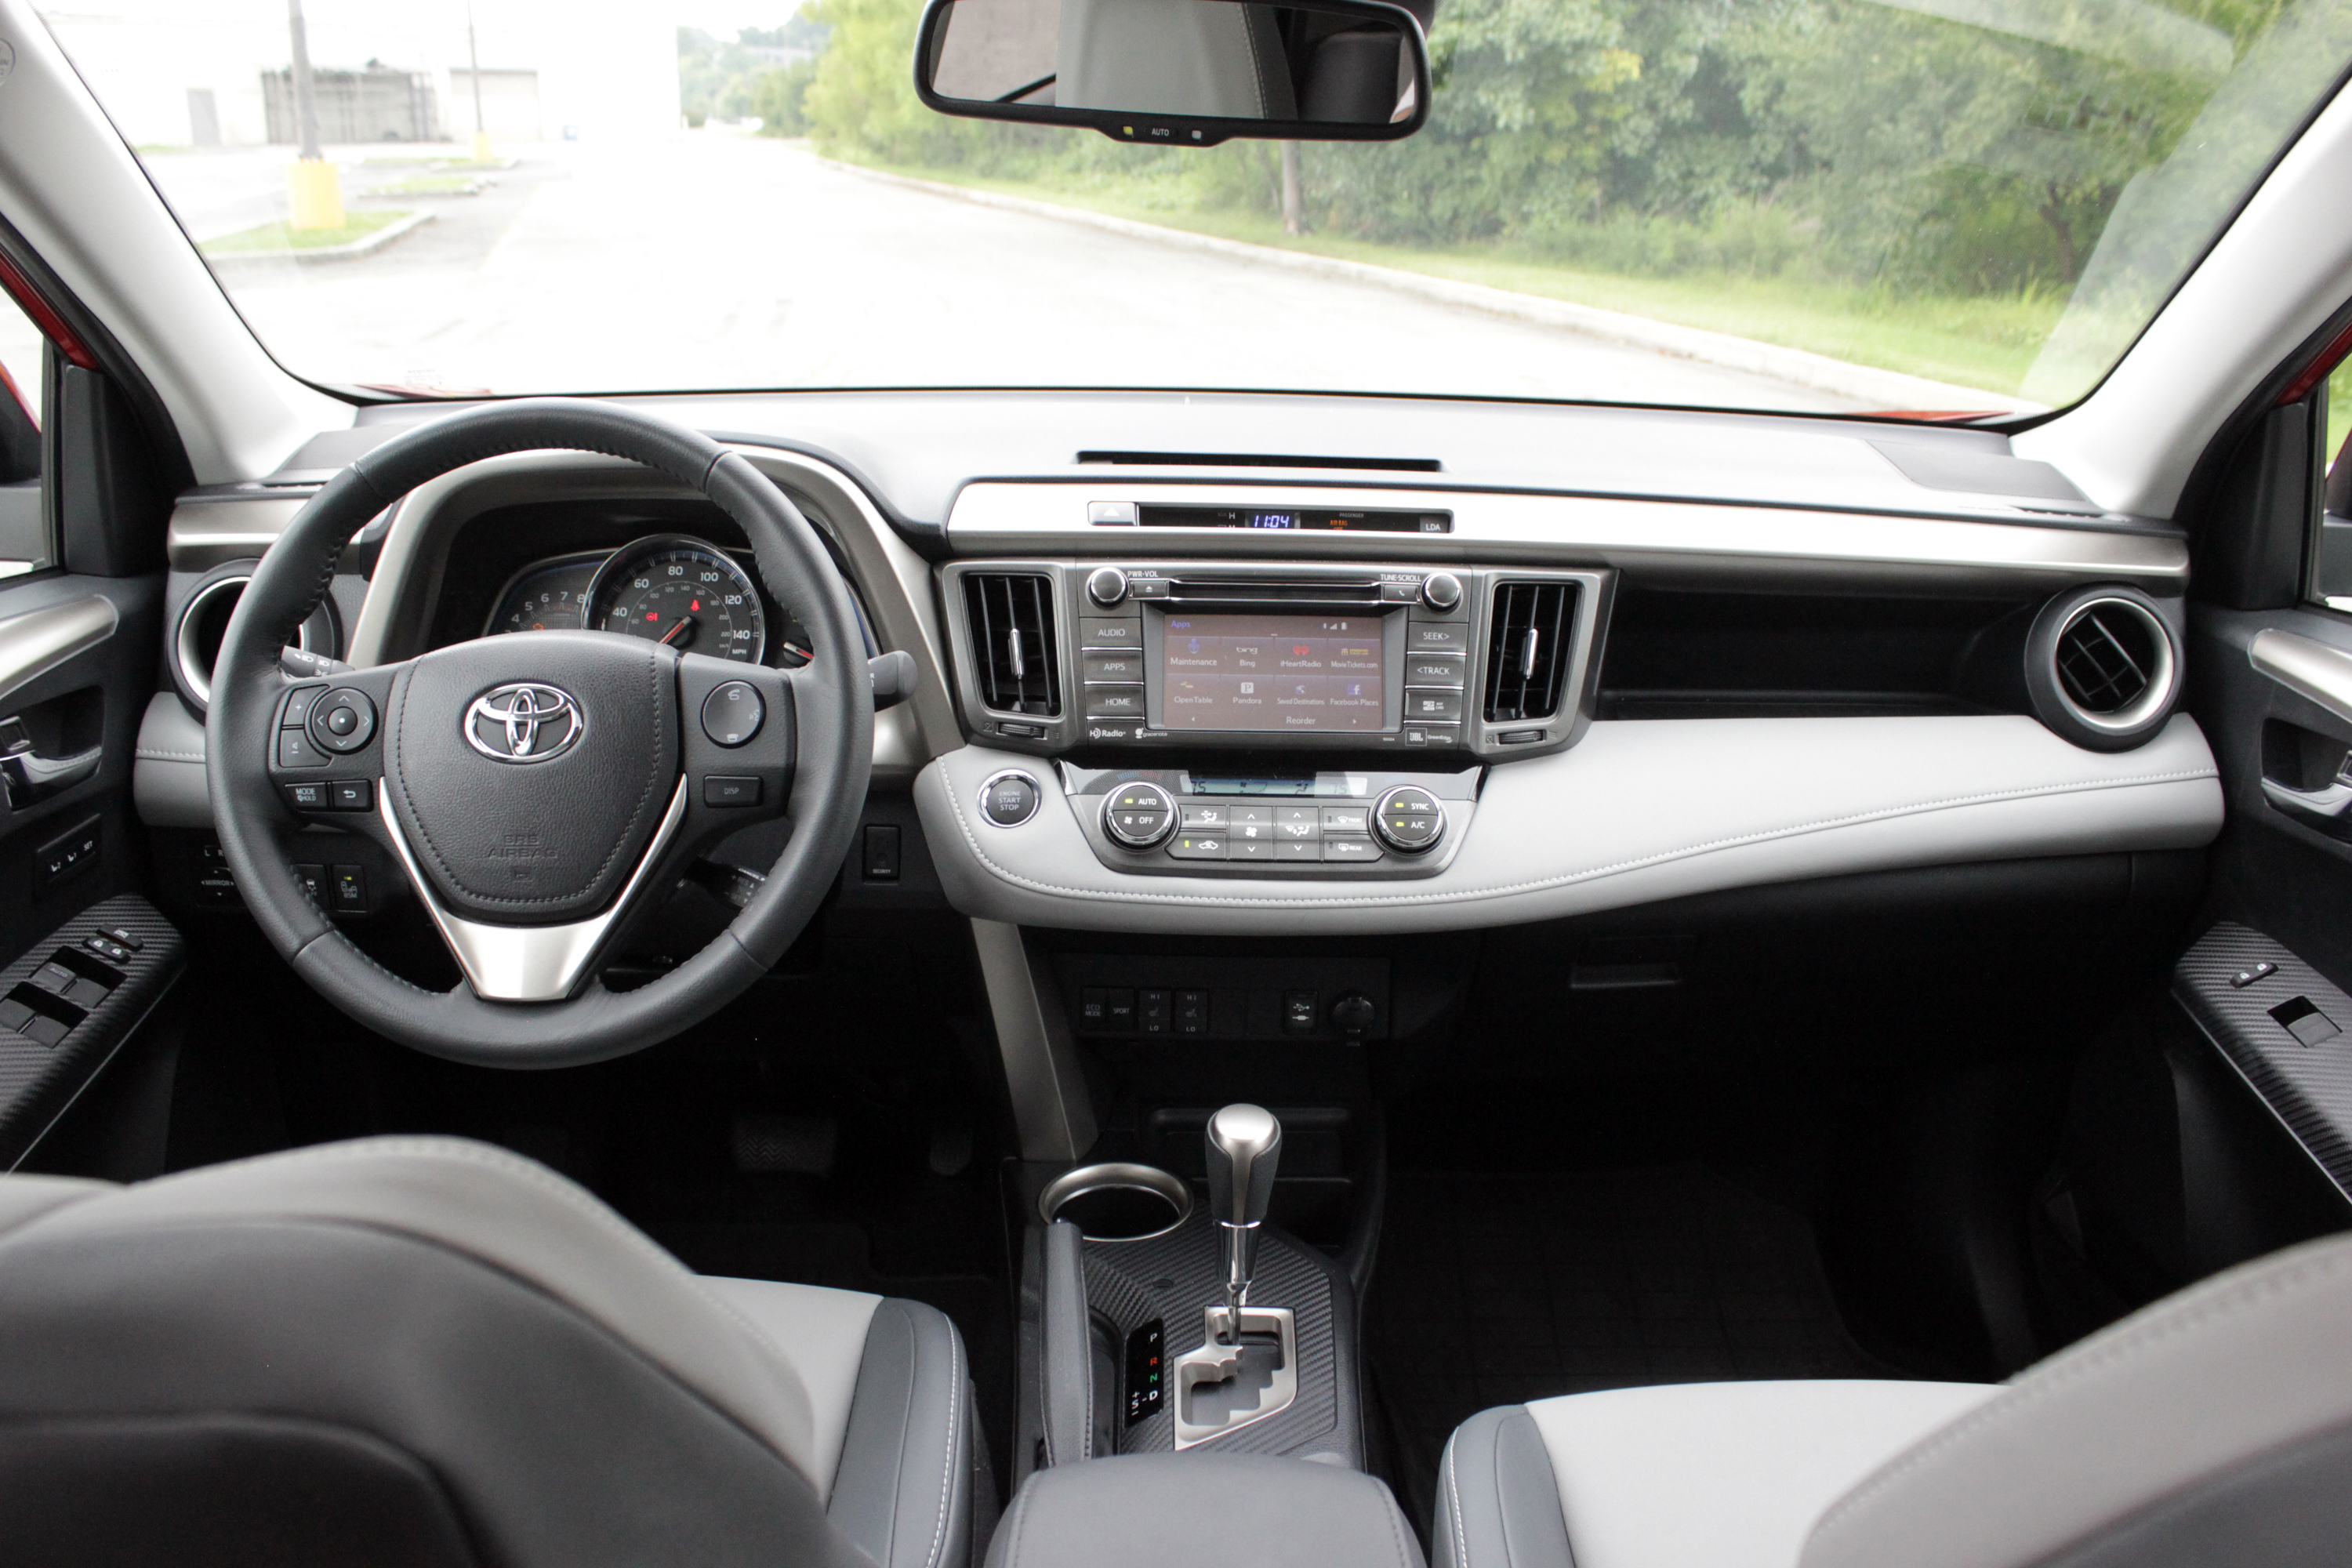 buyers gear toyota reviews rav review top car the interior guide